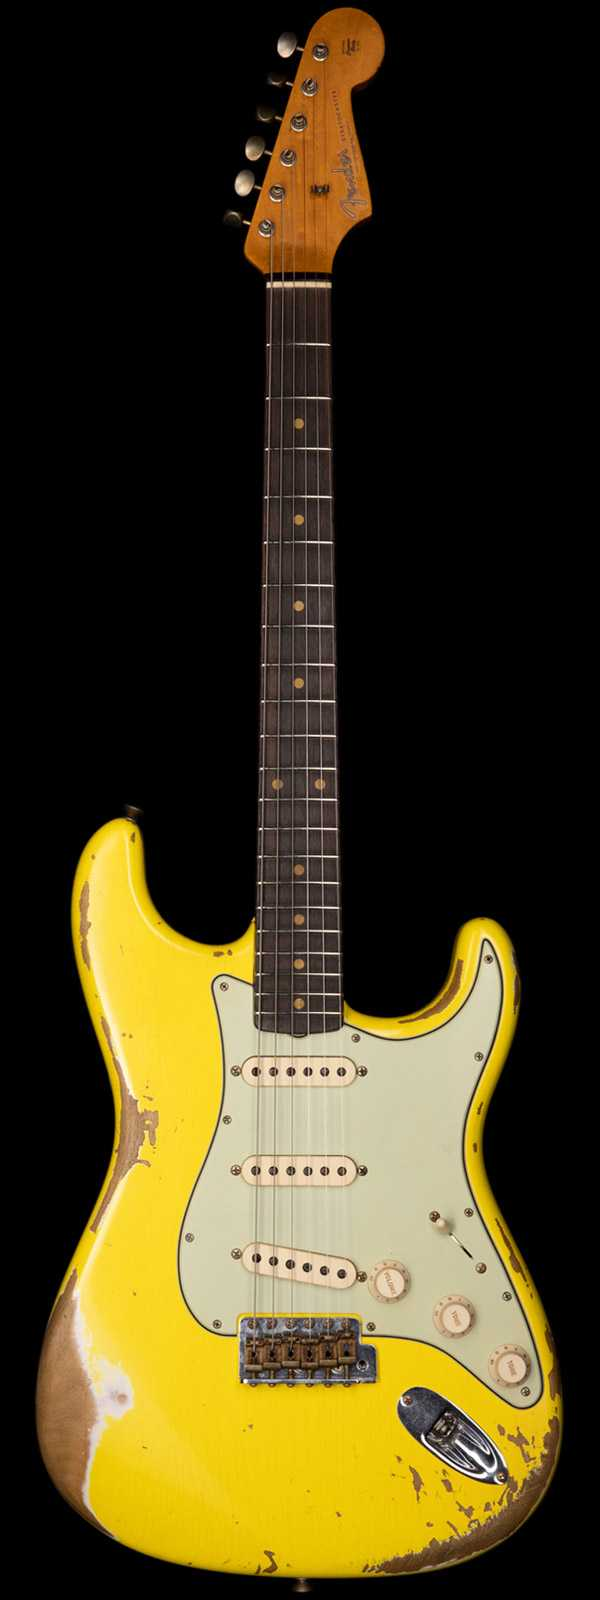 Fender Custom Shop 1961 Stratocaster Heavy Relic Graffiti Yellow